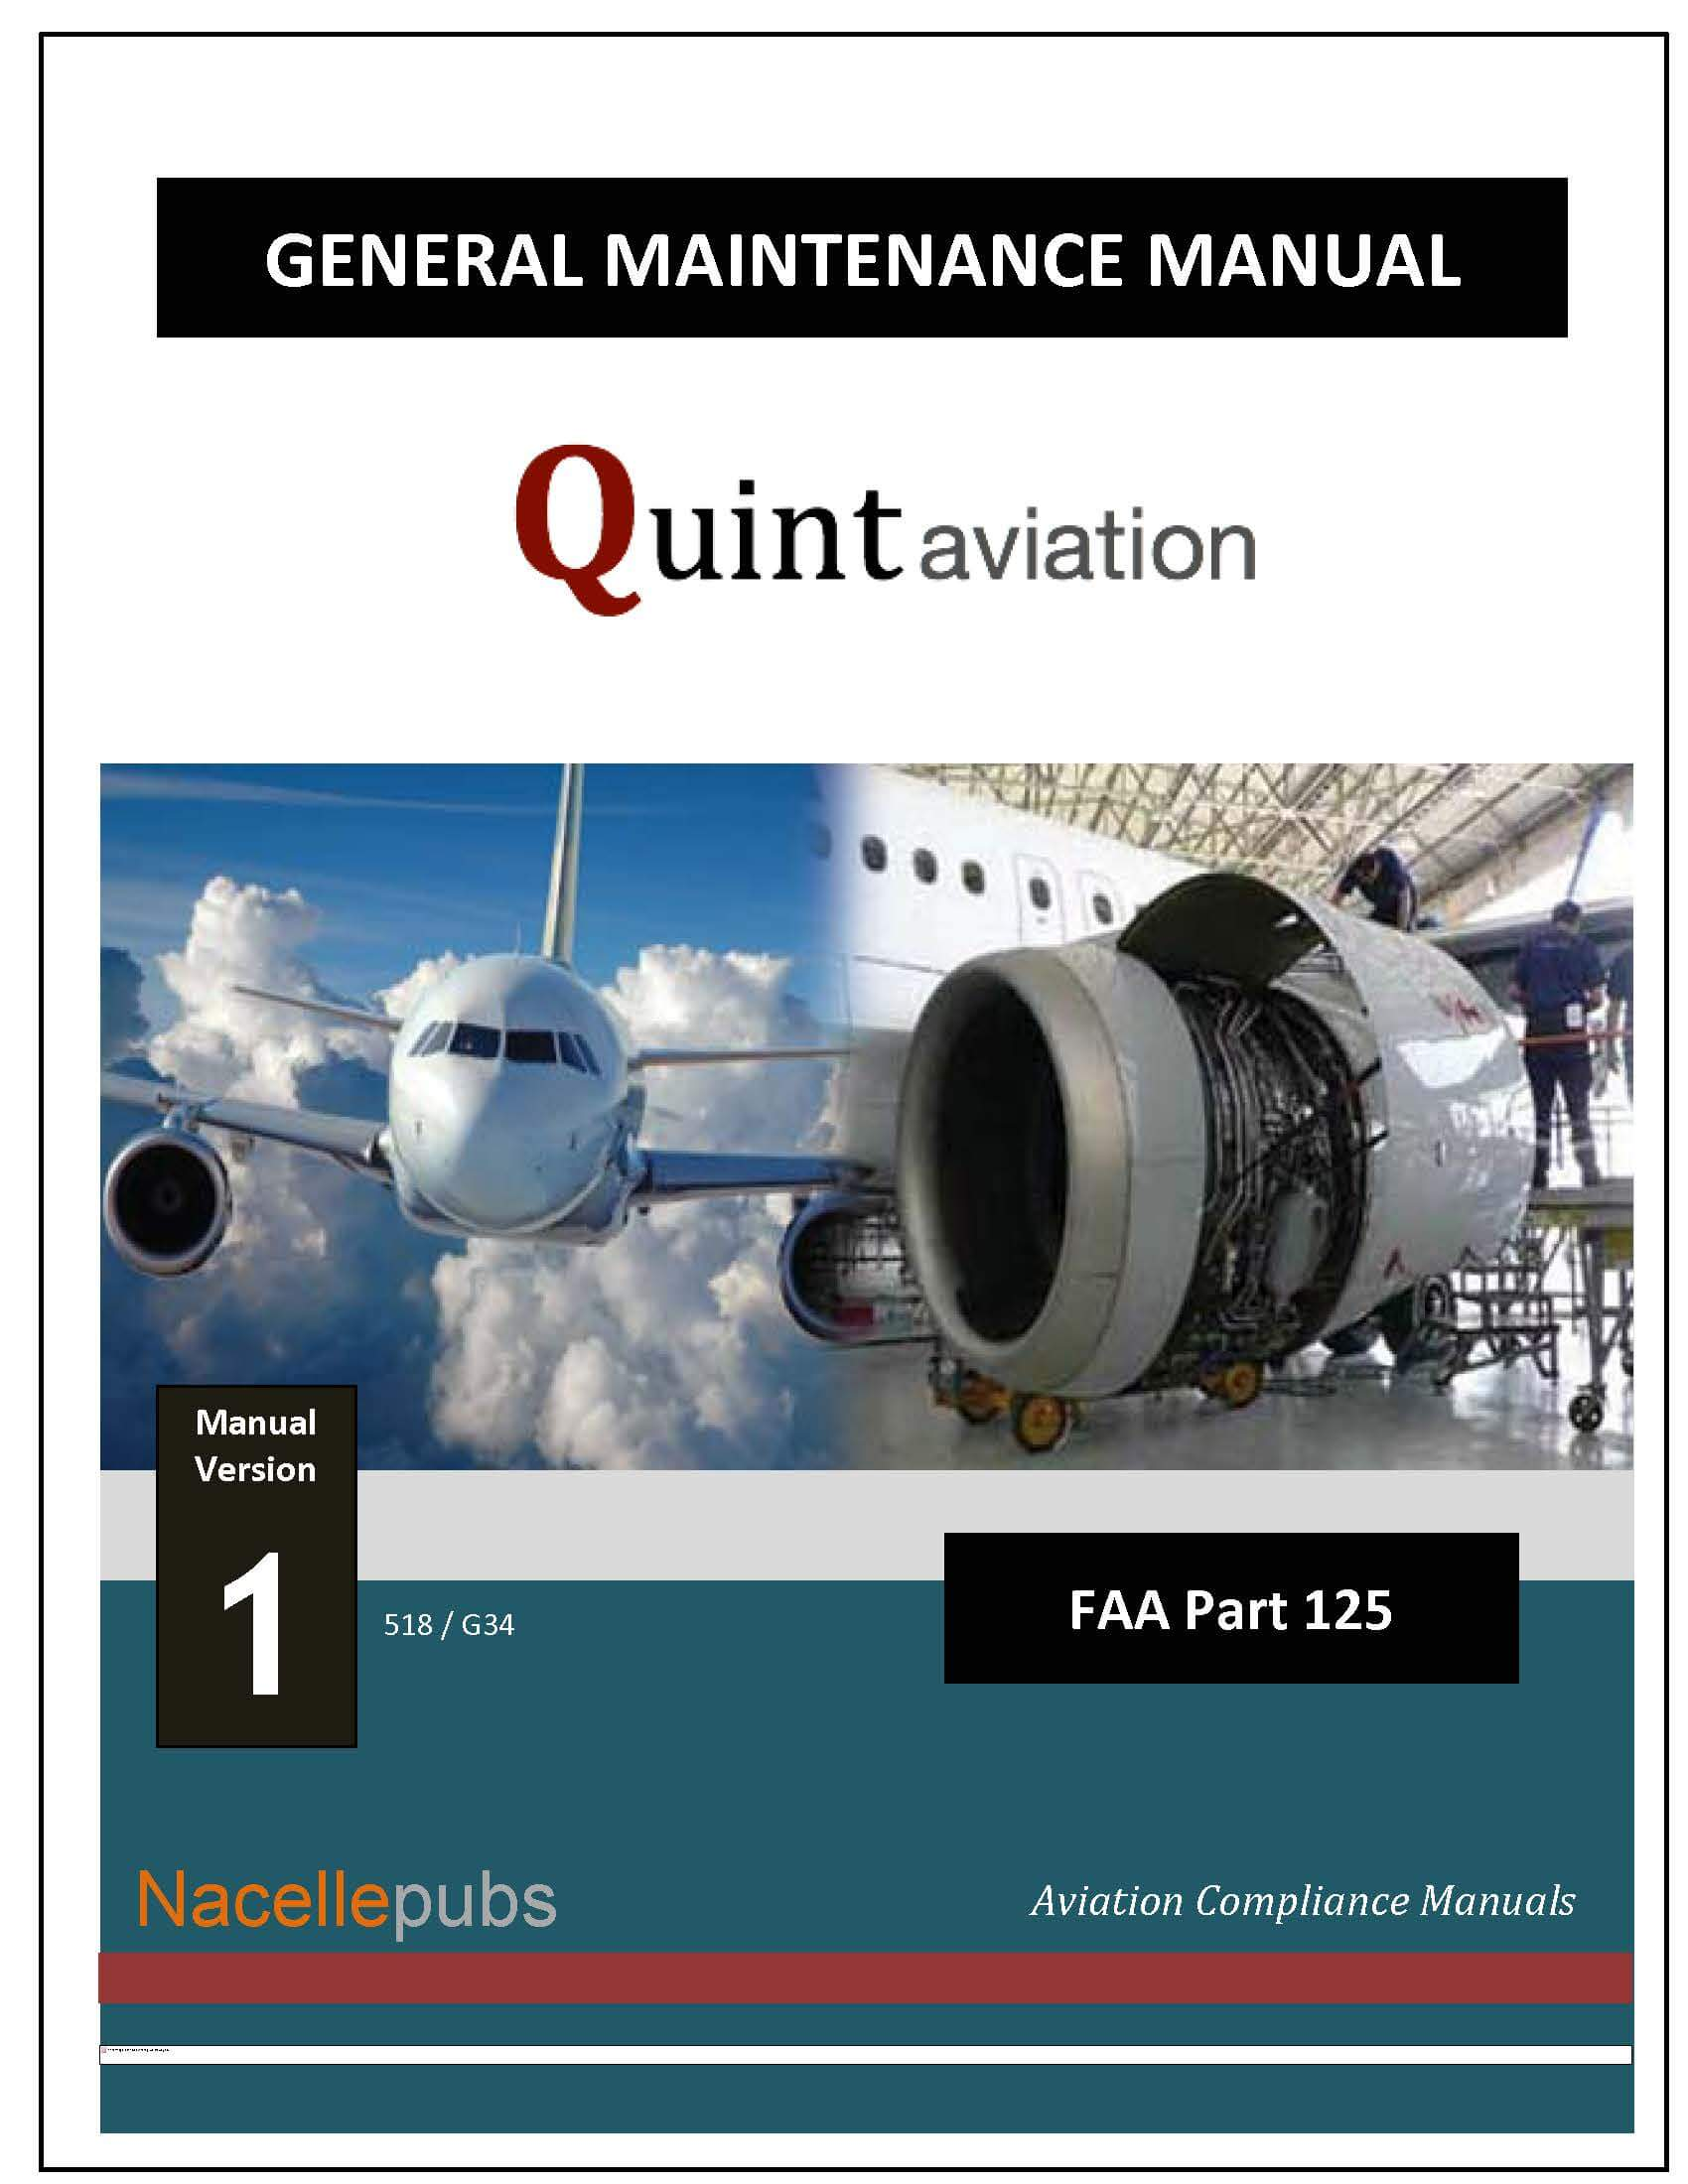 FAA Part 125 General Maintenance Manual (GMM)